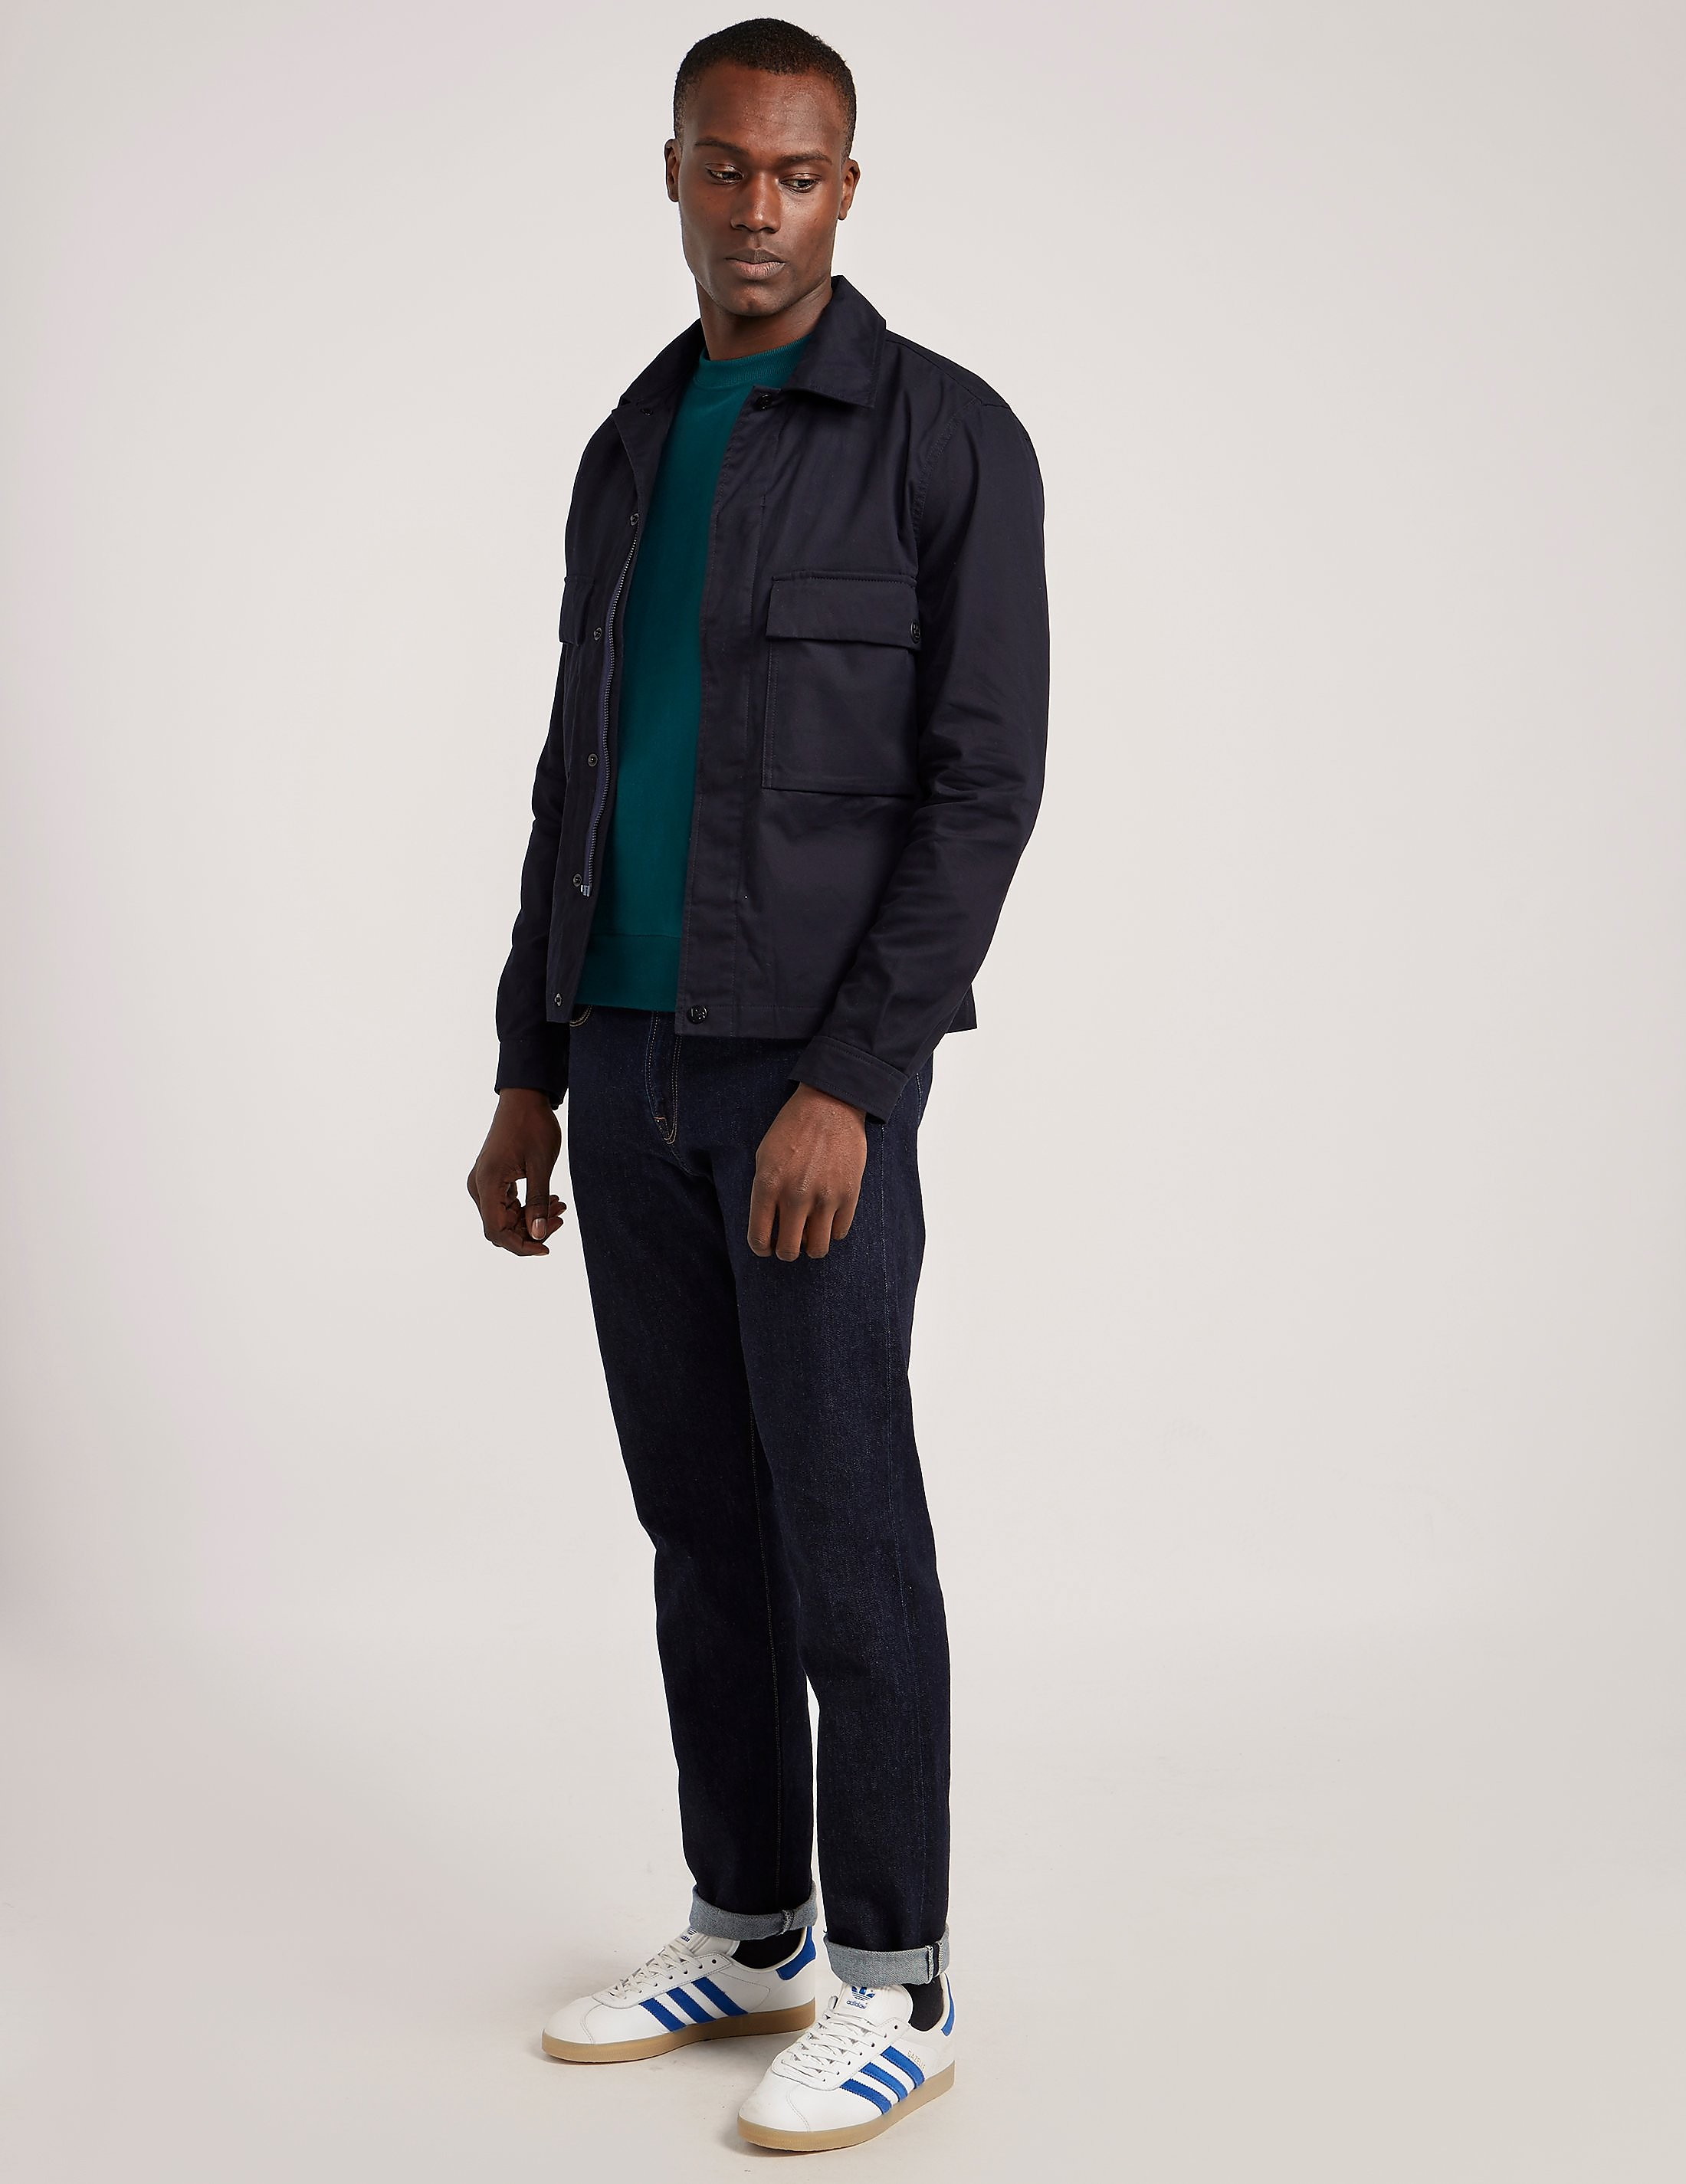 Paul Smith Two Pocket Light Jacket